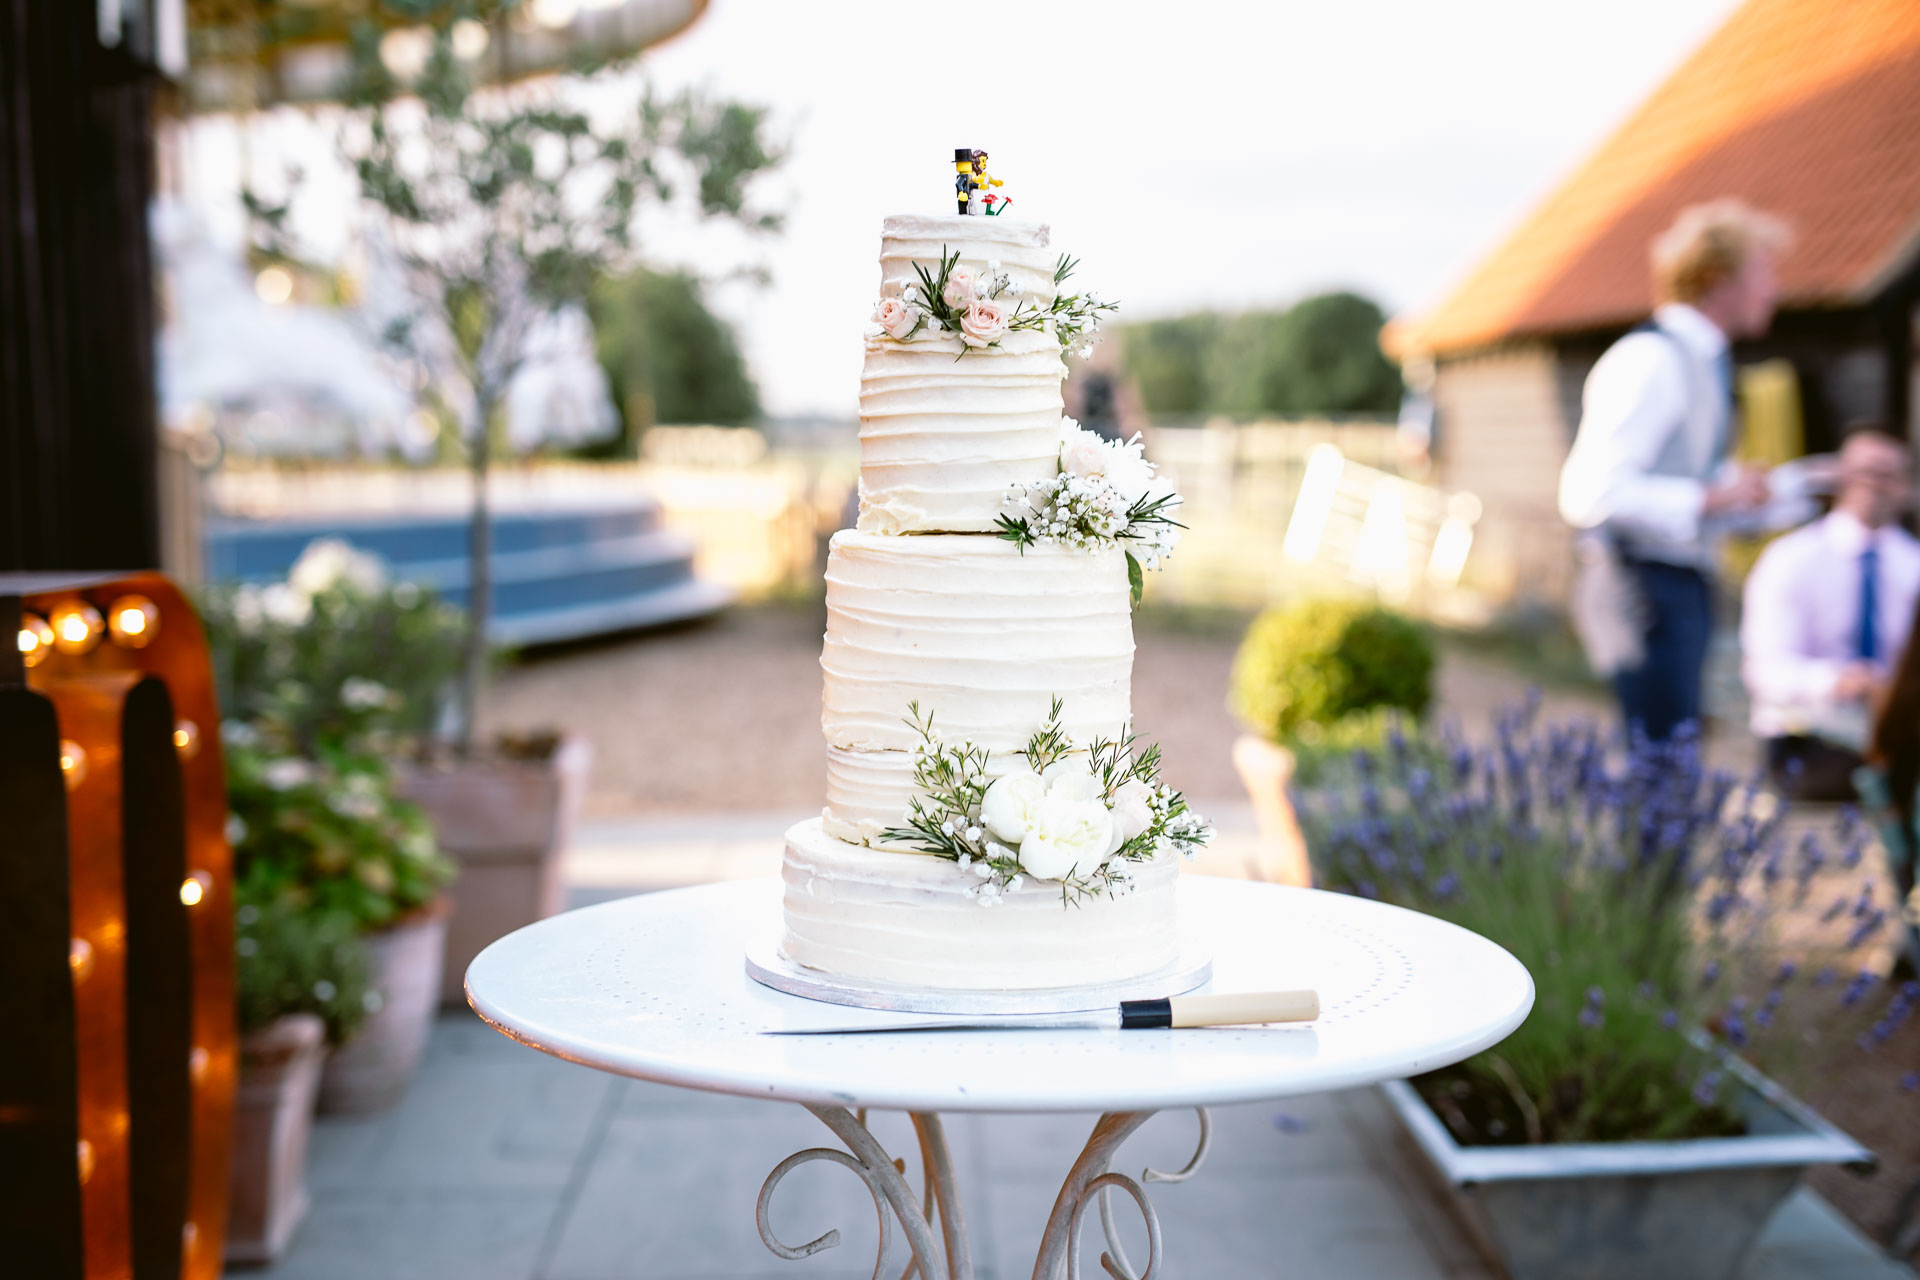 preston court boho wedding alexia and dan wedding cake look on the table outside of the venue